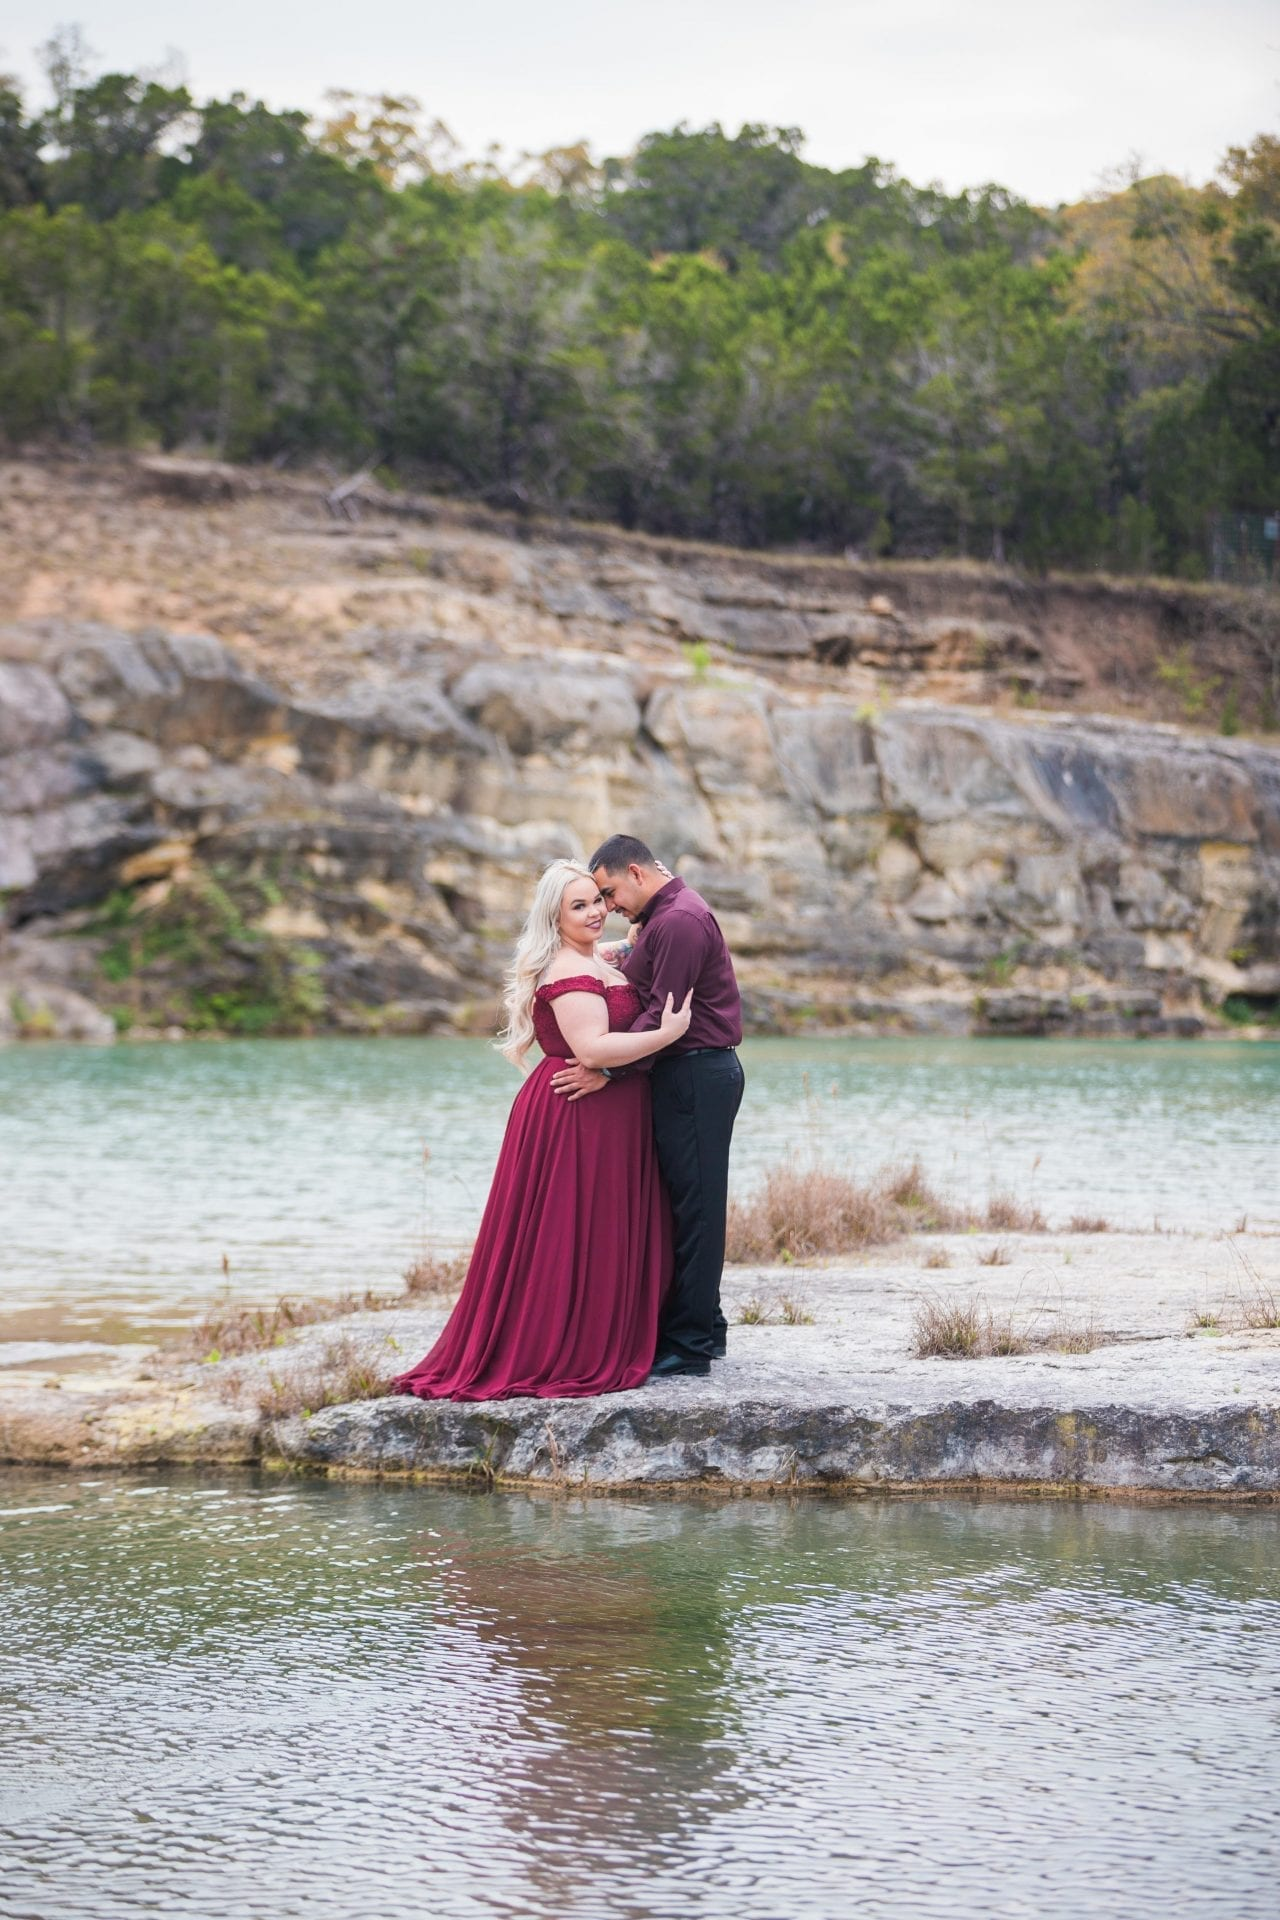 Katie and Gabe engagement session Canyon Lake dam gorge on the island looking at ea other close up